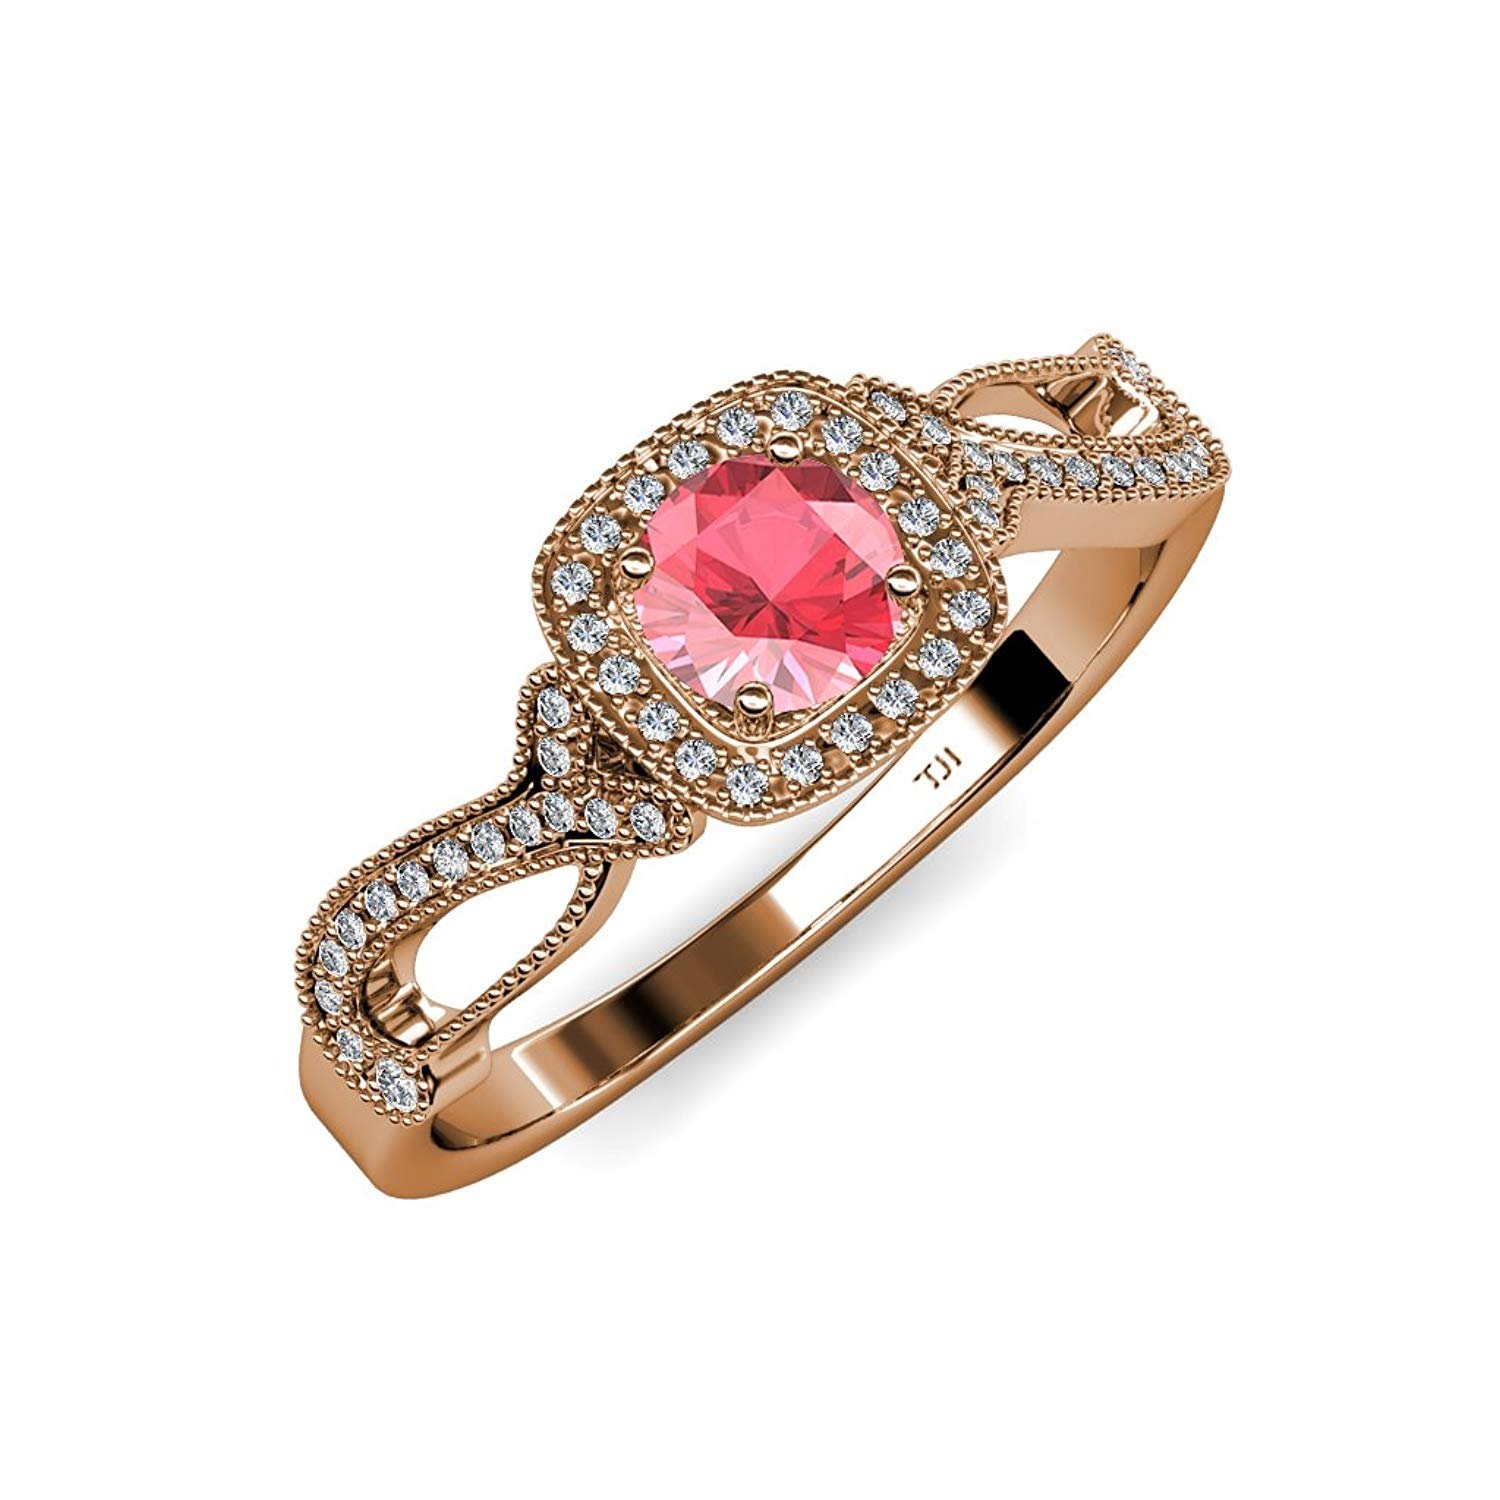 Pink Tourmaline and Diamond Swirl Halo Engagement Ring Milgrain Work 1.25 ct tw in 14K Rose Gold.size 4.5 by TriJewels